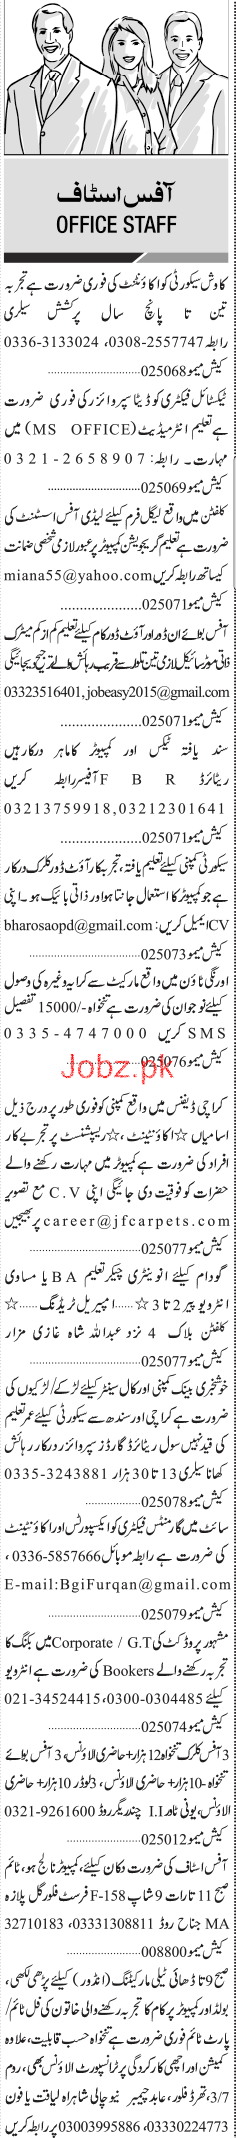 Accountant, Data Supervisors, Lady Office Assistants Wanted